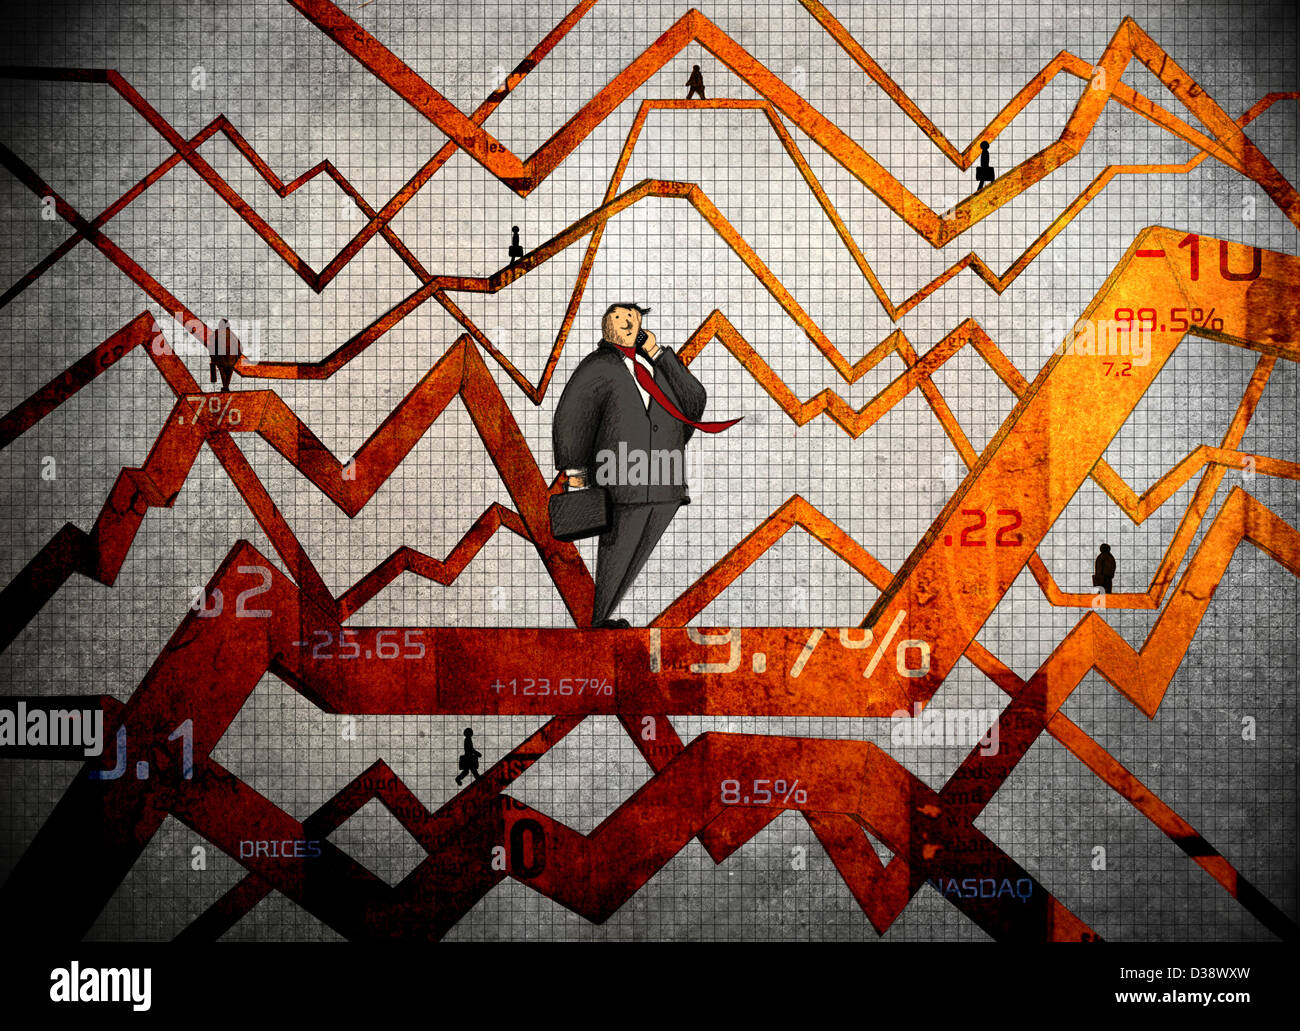 Fluctuation in stock market - Stock Image